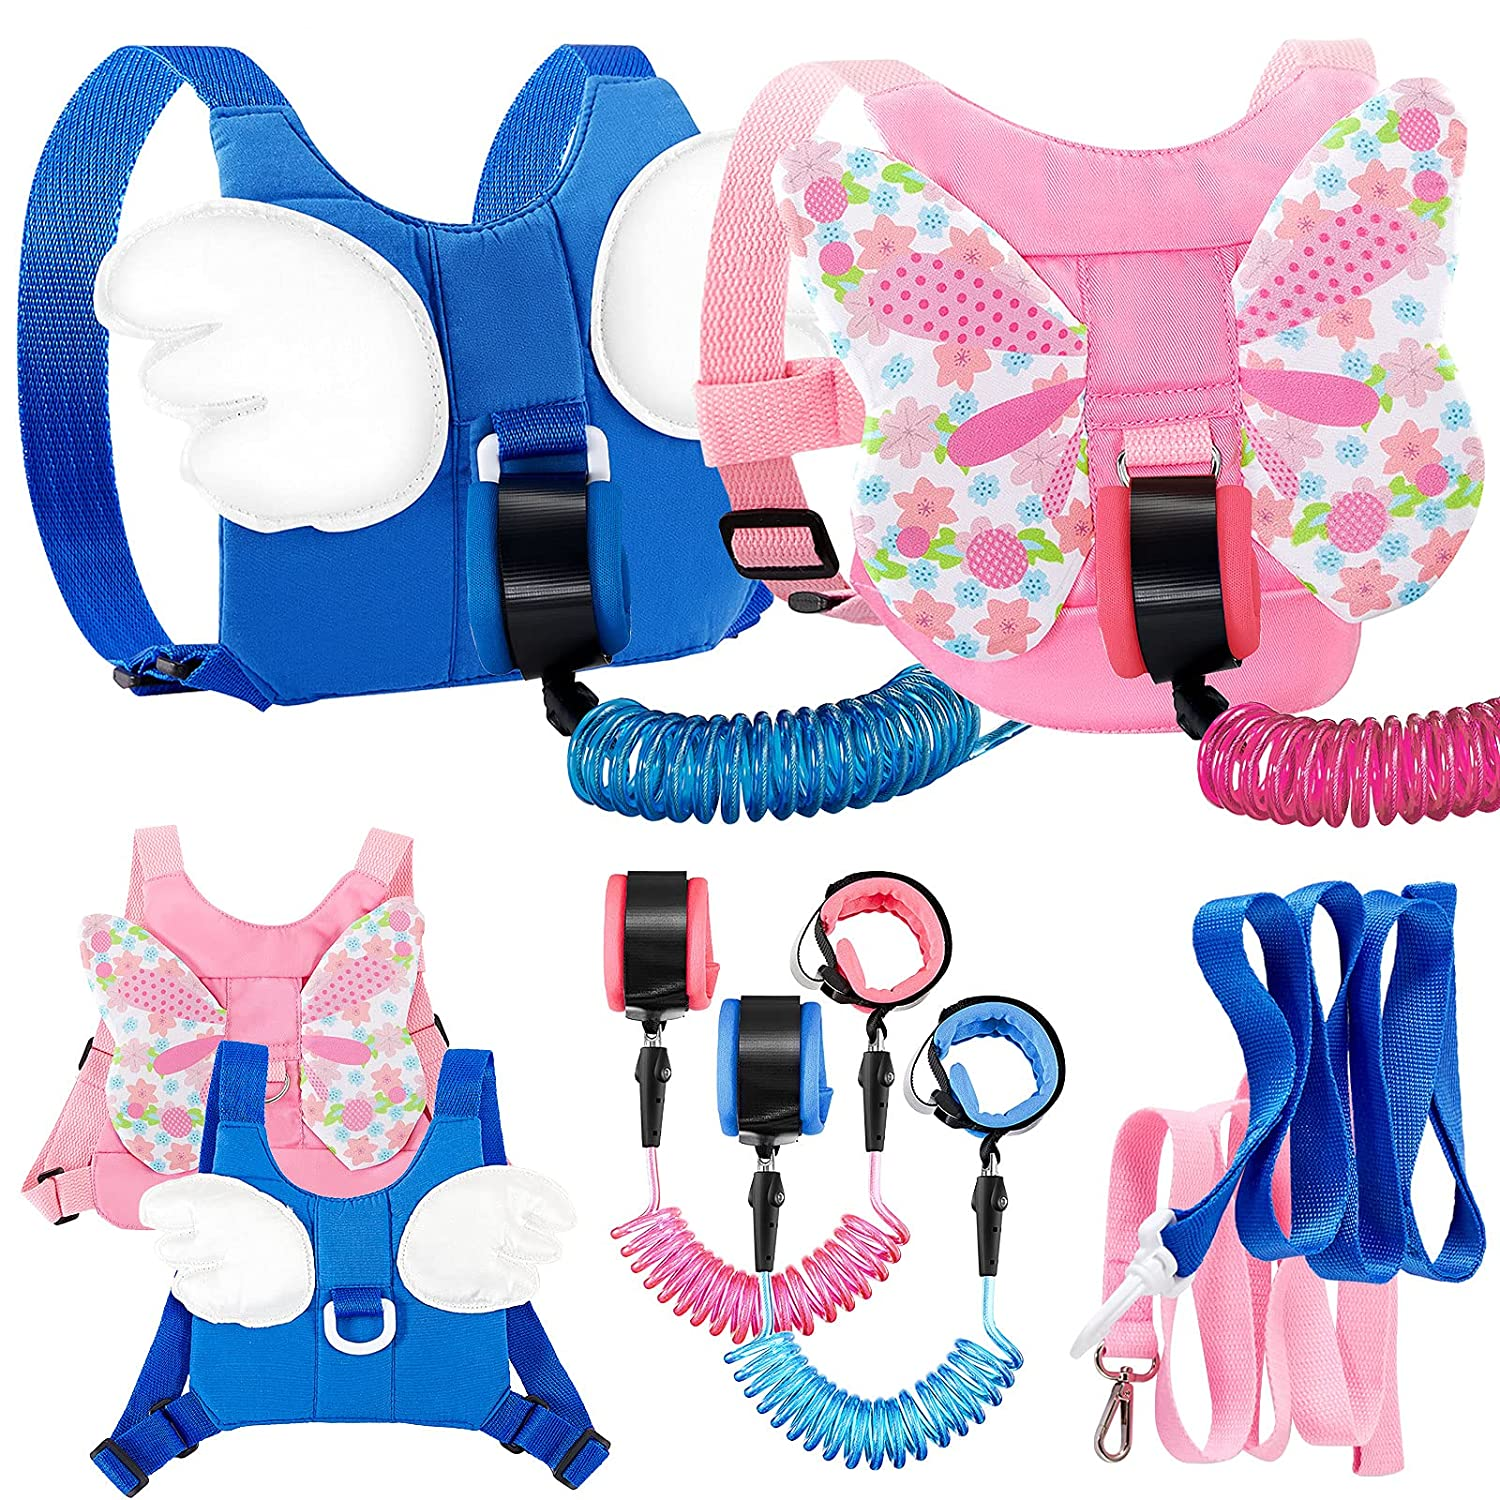 4 Pieces Leashes Toddler Harness Leashes Child Harness Backpack Toddler Safety Leash Wrist Walking Harness Wristband Anti Lost Wrist Link for Kids (Butterfly, Angel Wings)